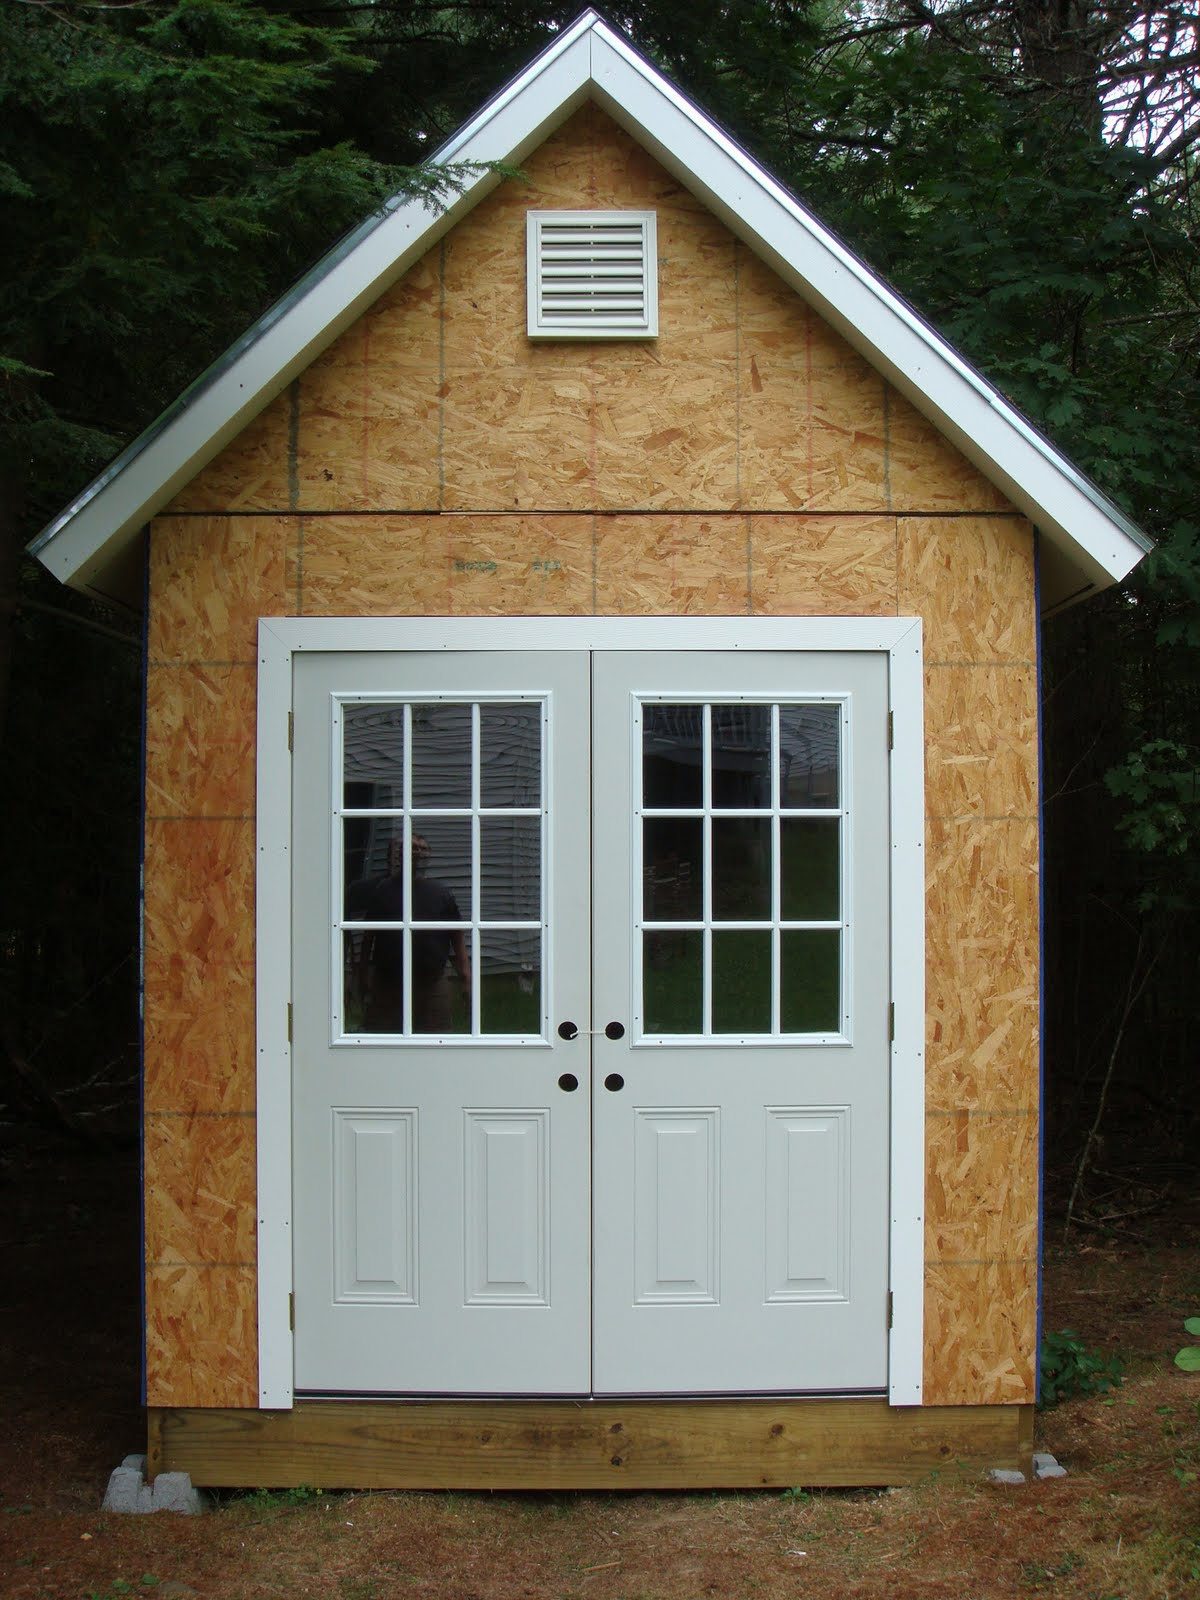 diy building shed door design tips cool shed deisgn